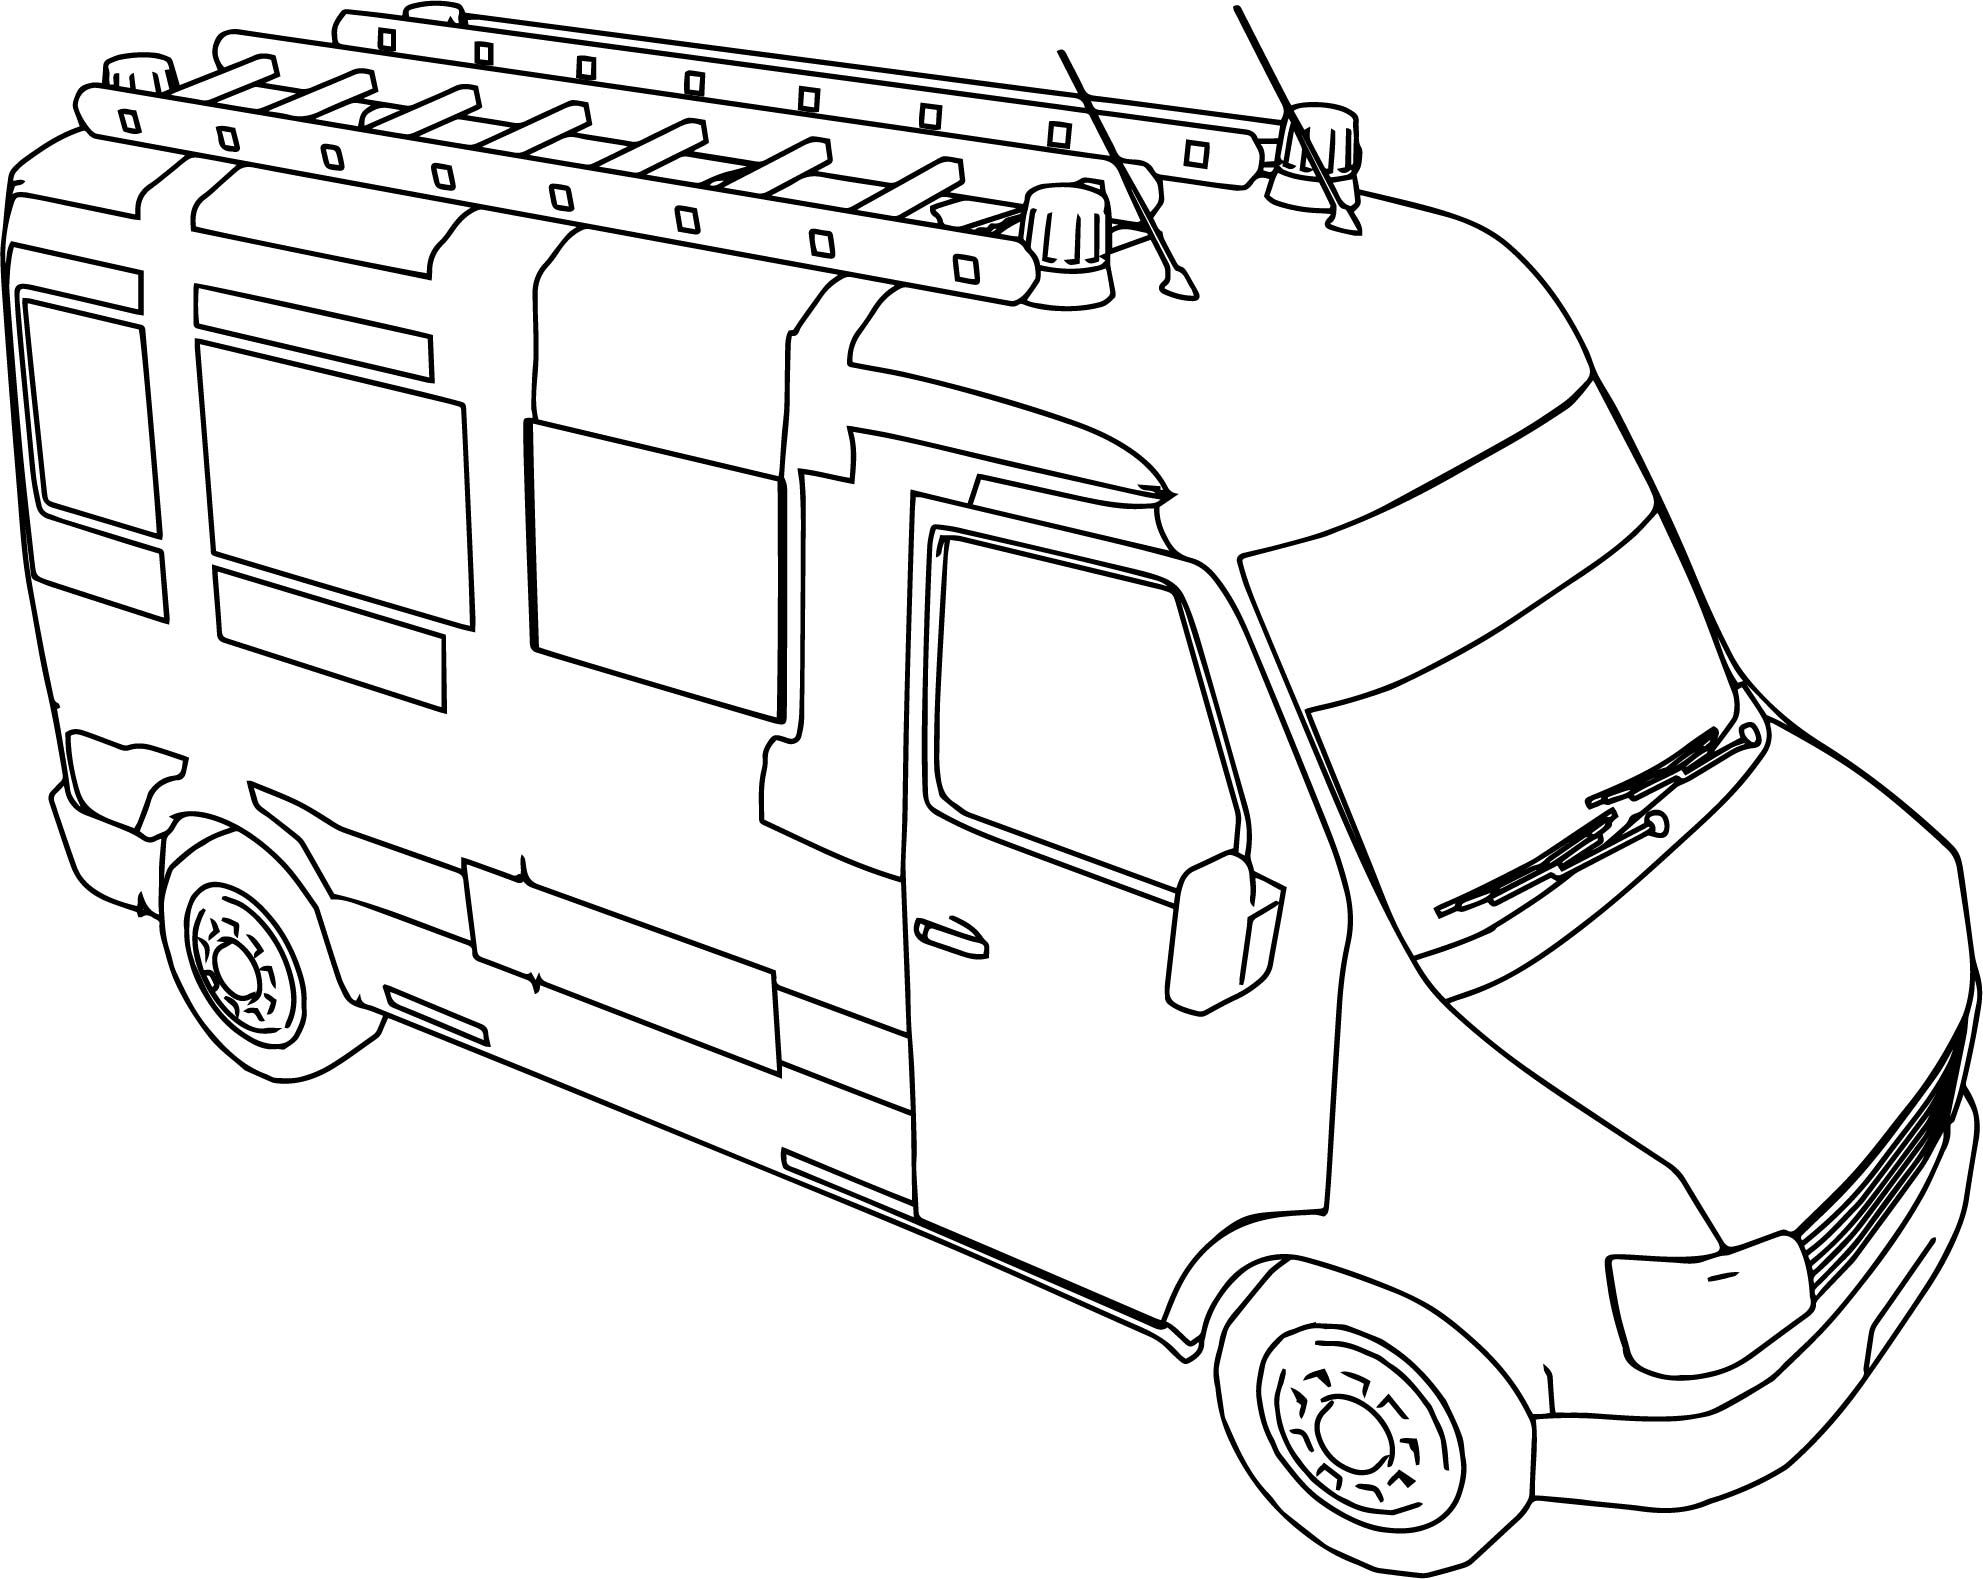 Awesome Fire Truck Mini Minibus Coloring Page Fire Trucks Coloring Pages Coloring Pages For Kids